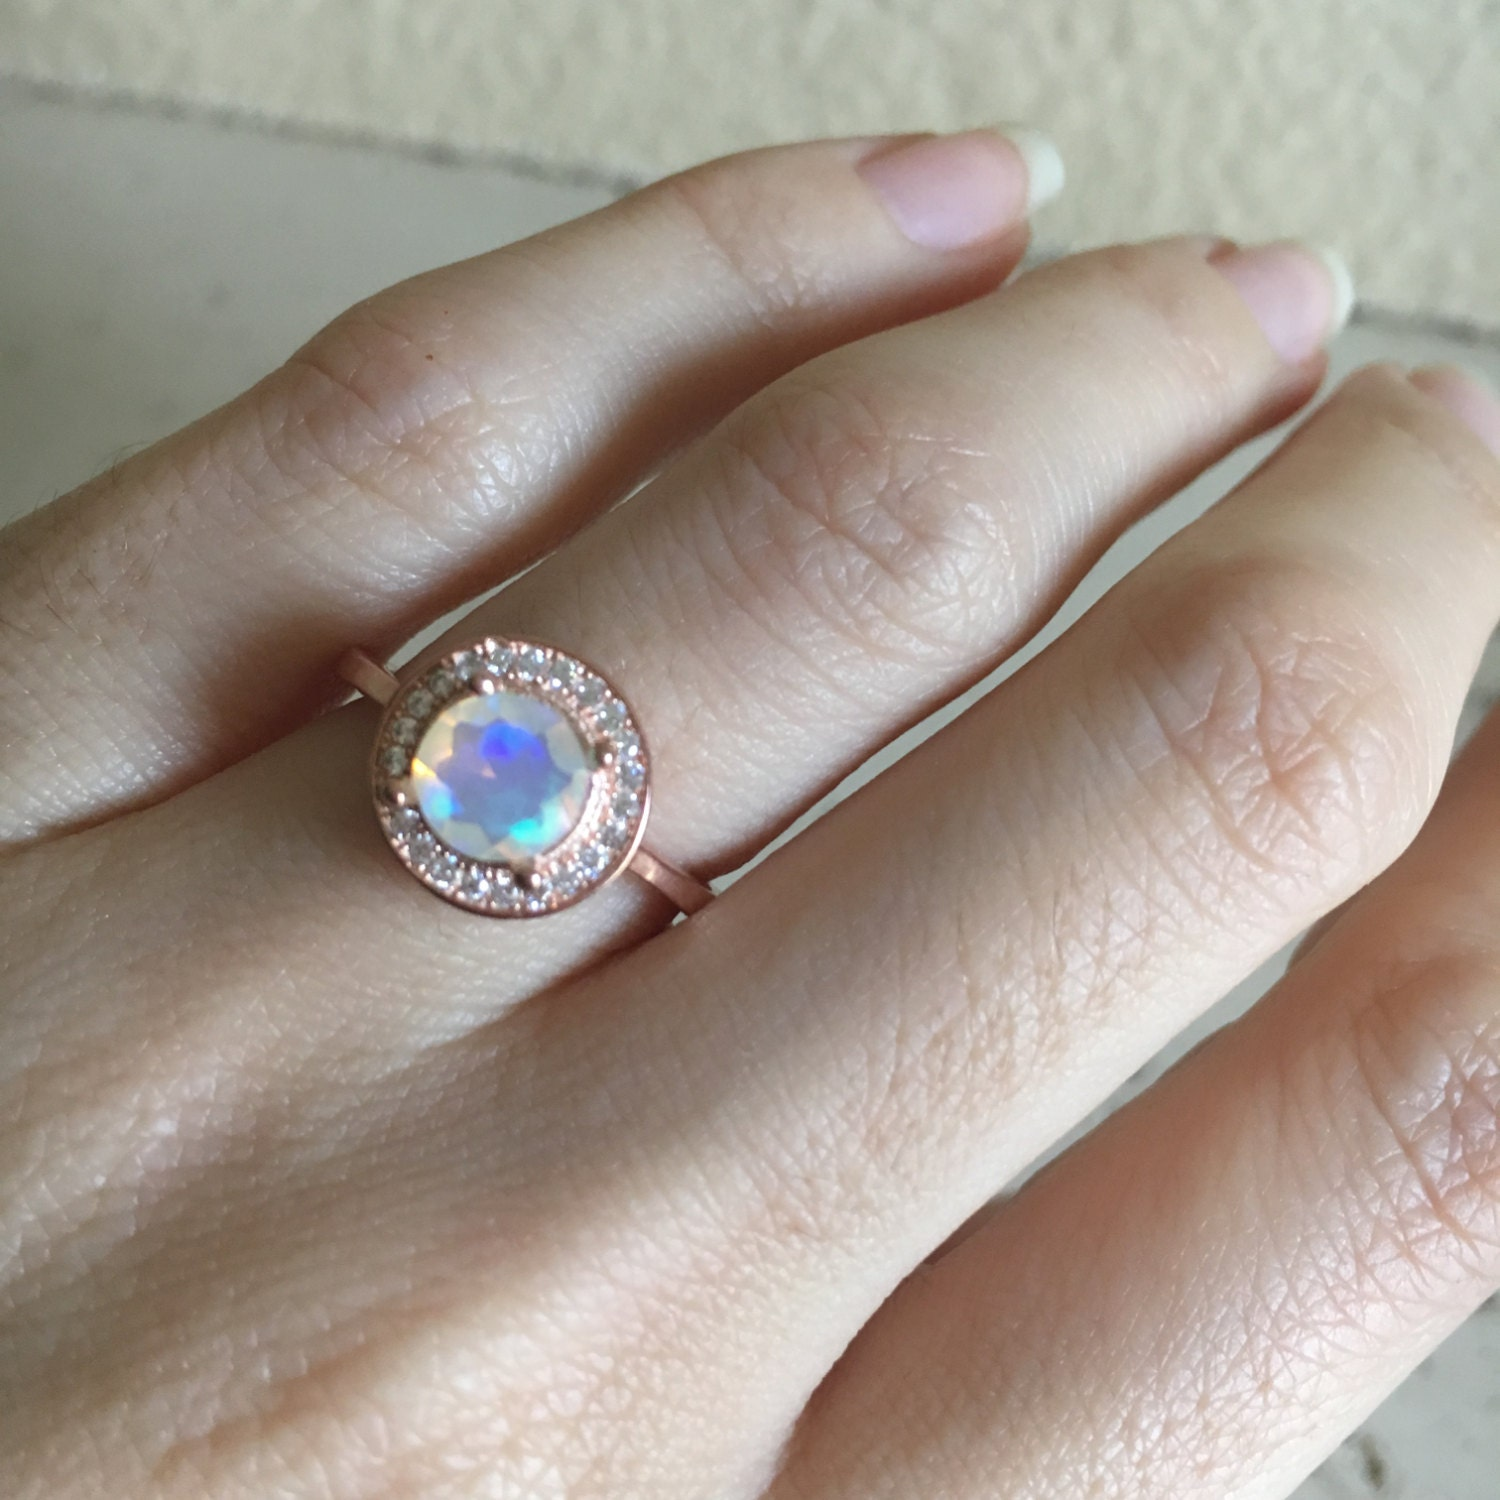 set ring a jewelry opal oval pendant engagement saddle dejonghe diamond product boulder original rings